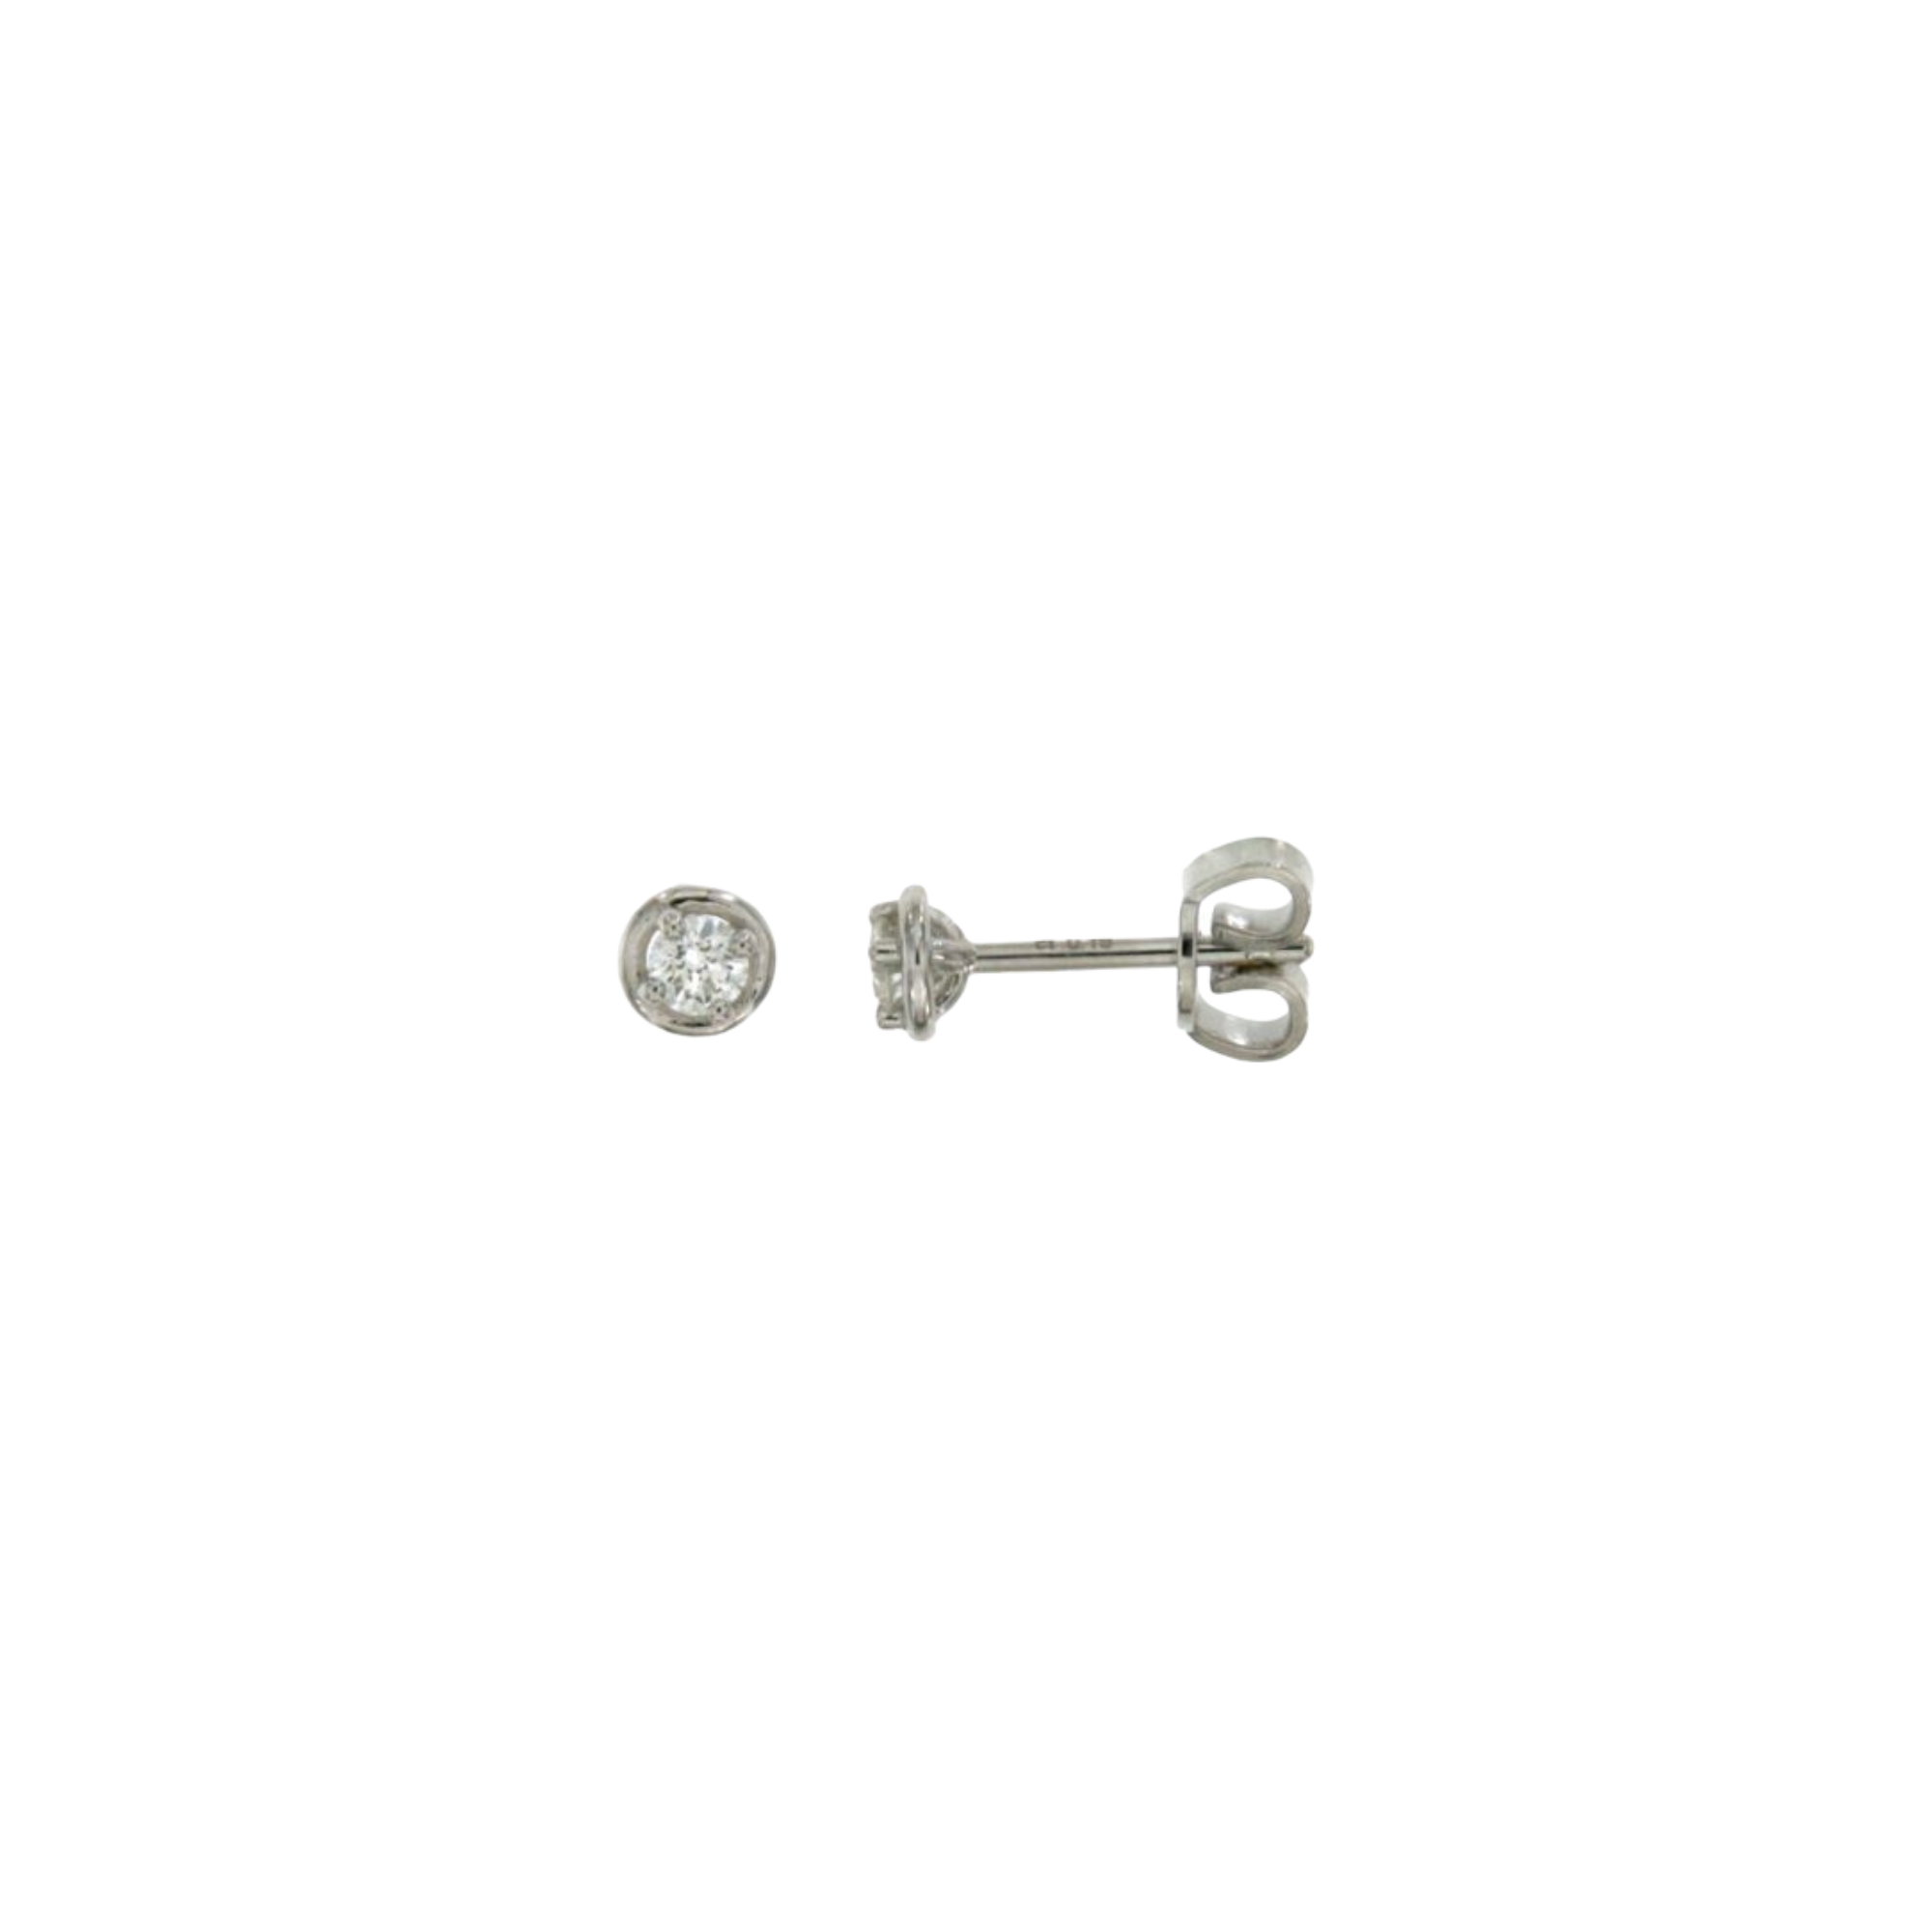 Mirco Visconti Earrings - Z582/30